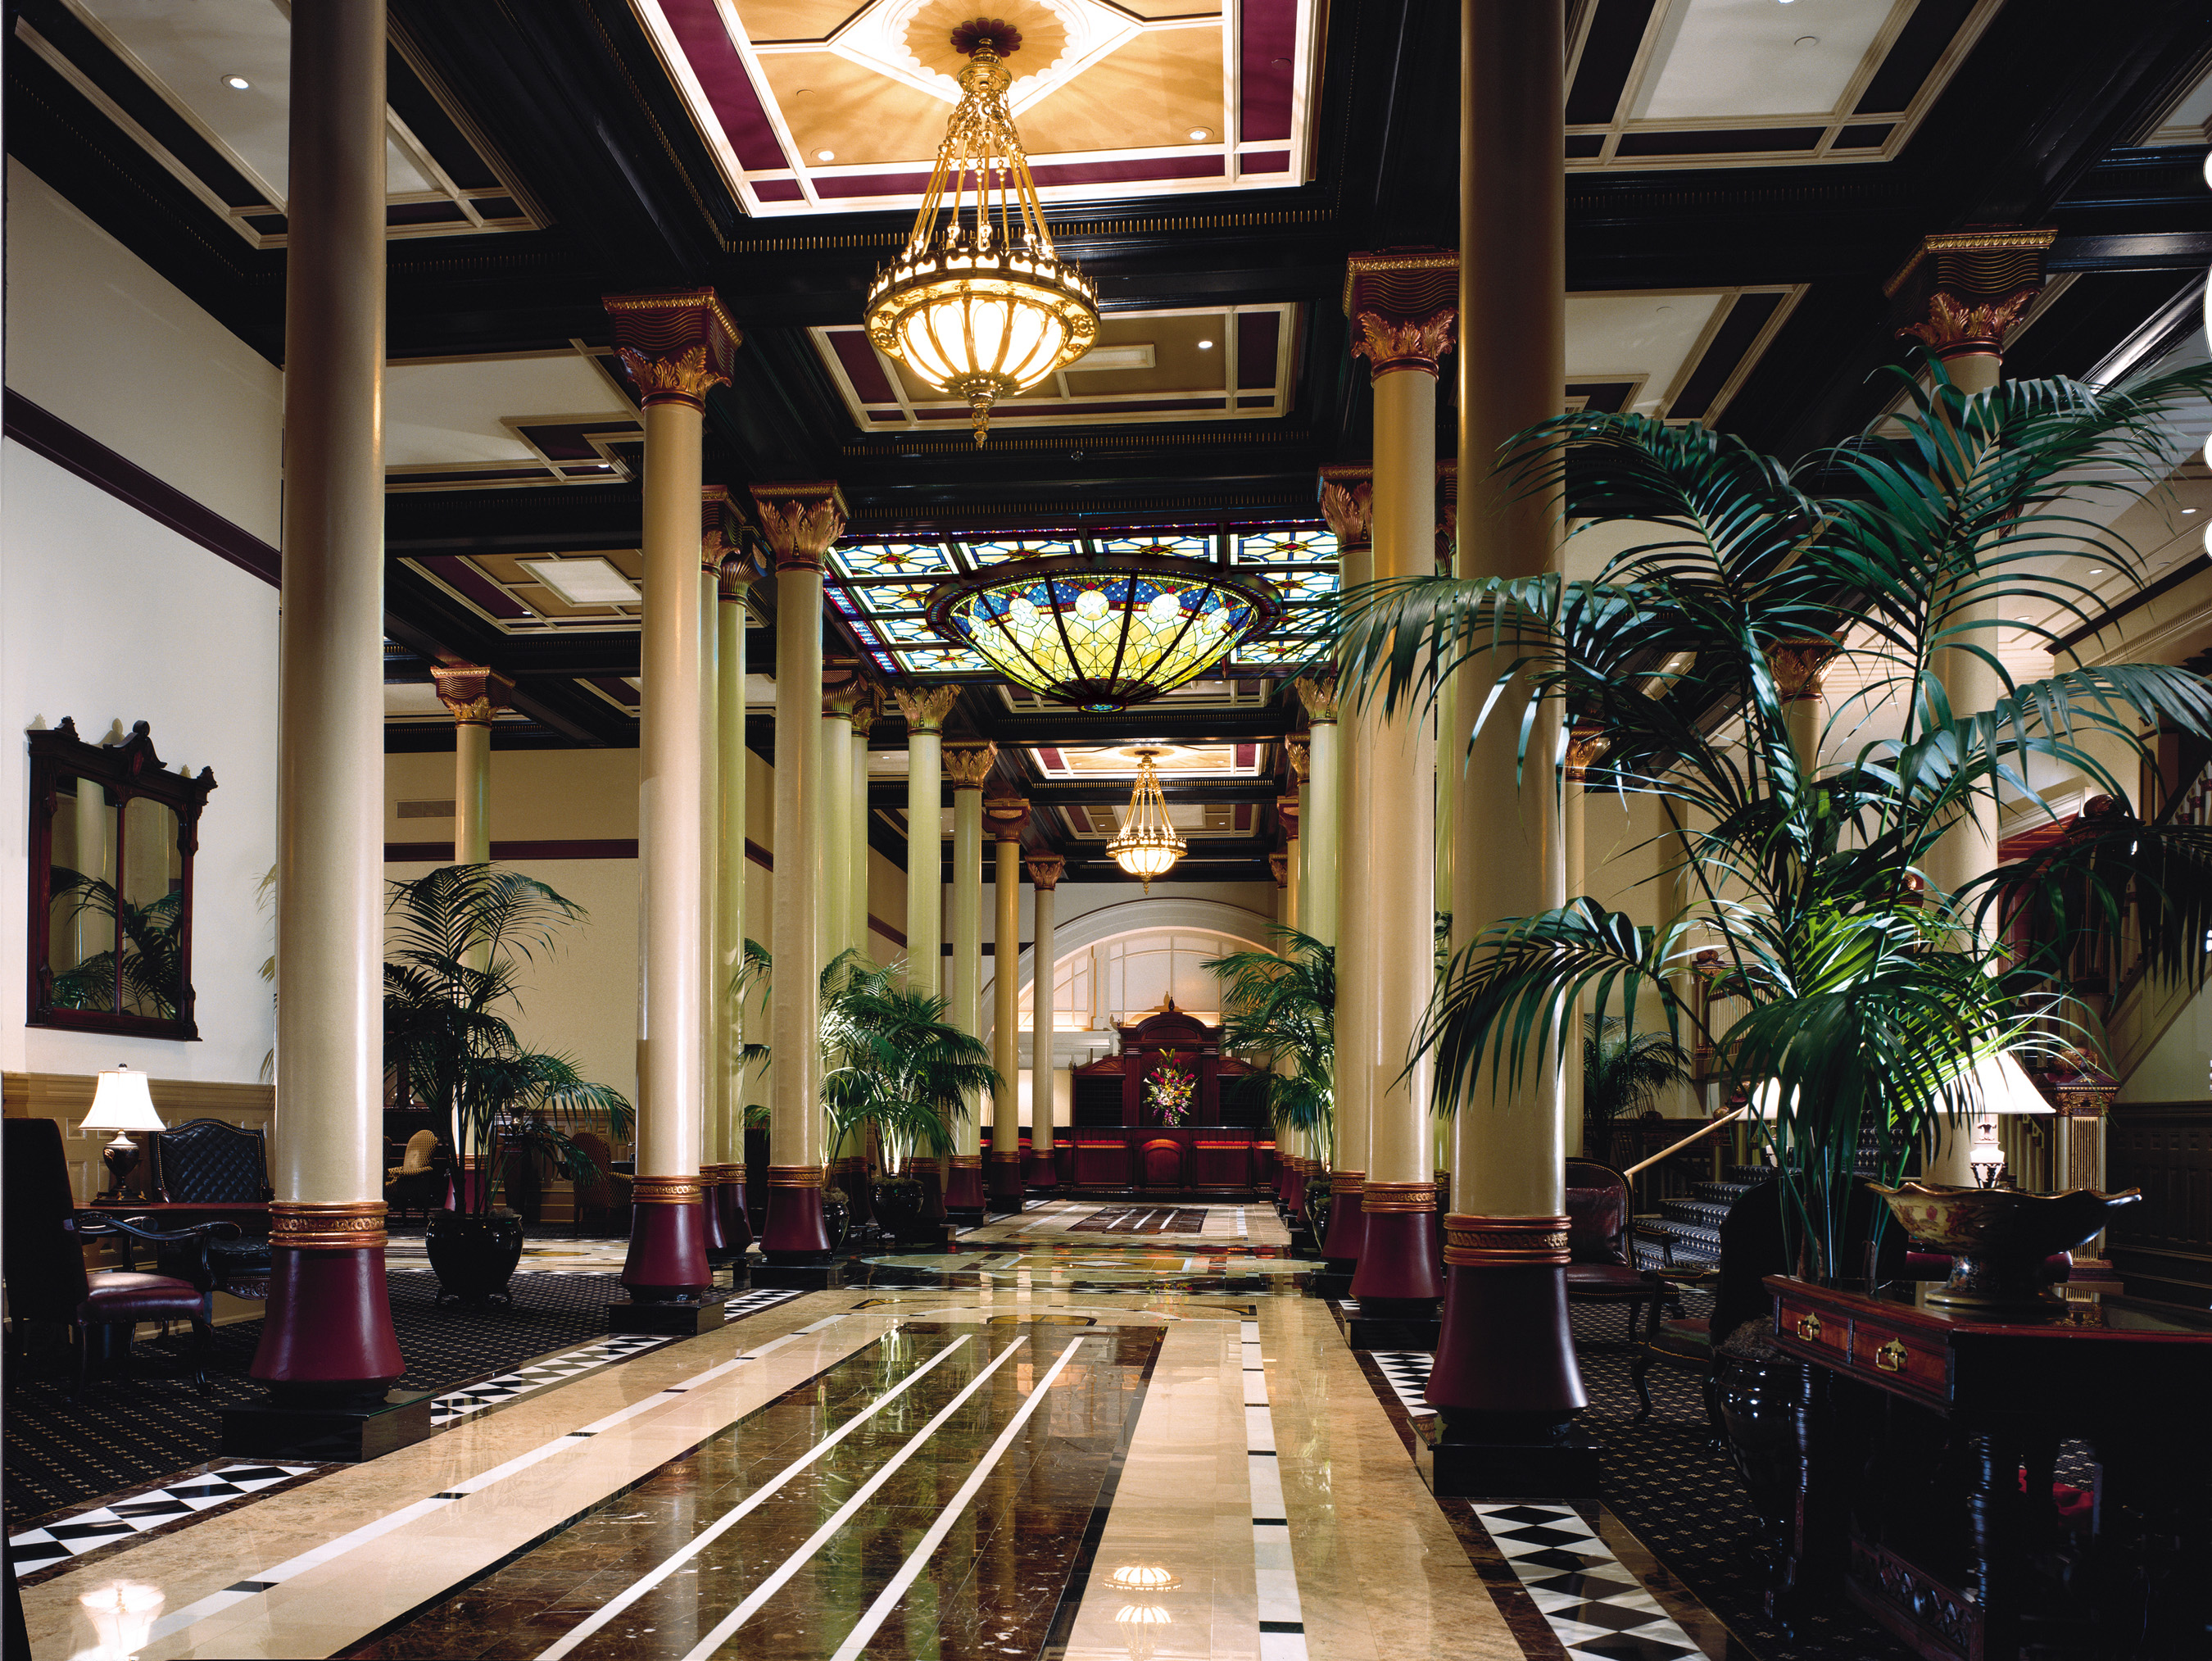 That's quite a lobby! Photo courtesy of the Driskill hotel